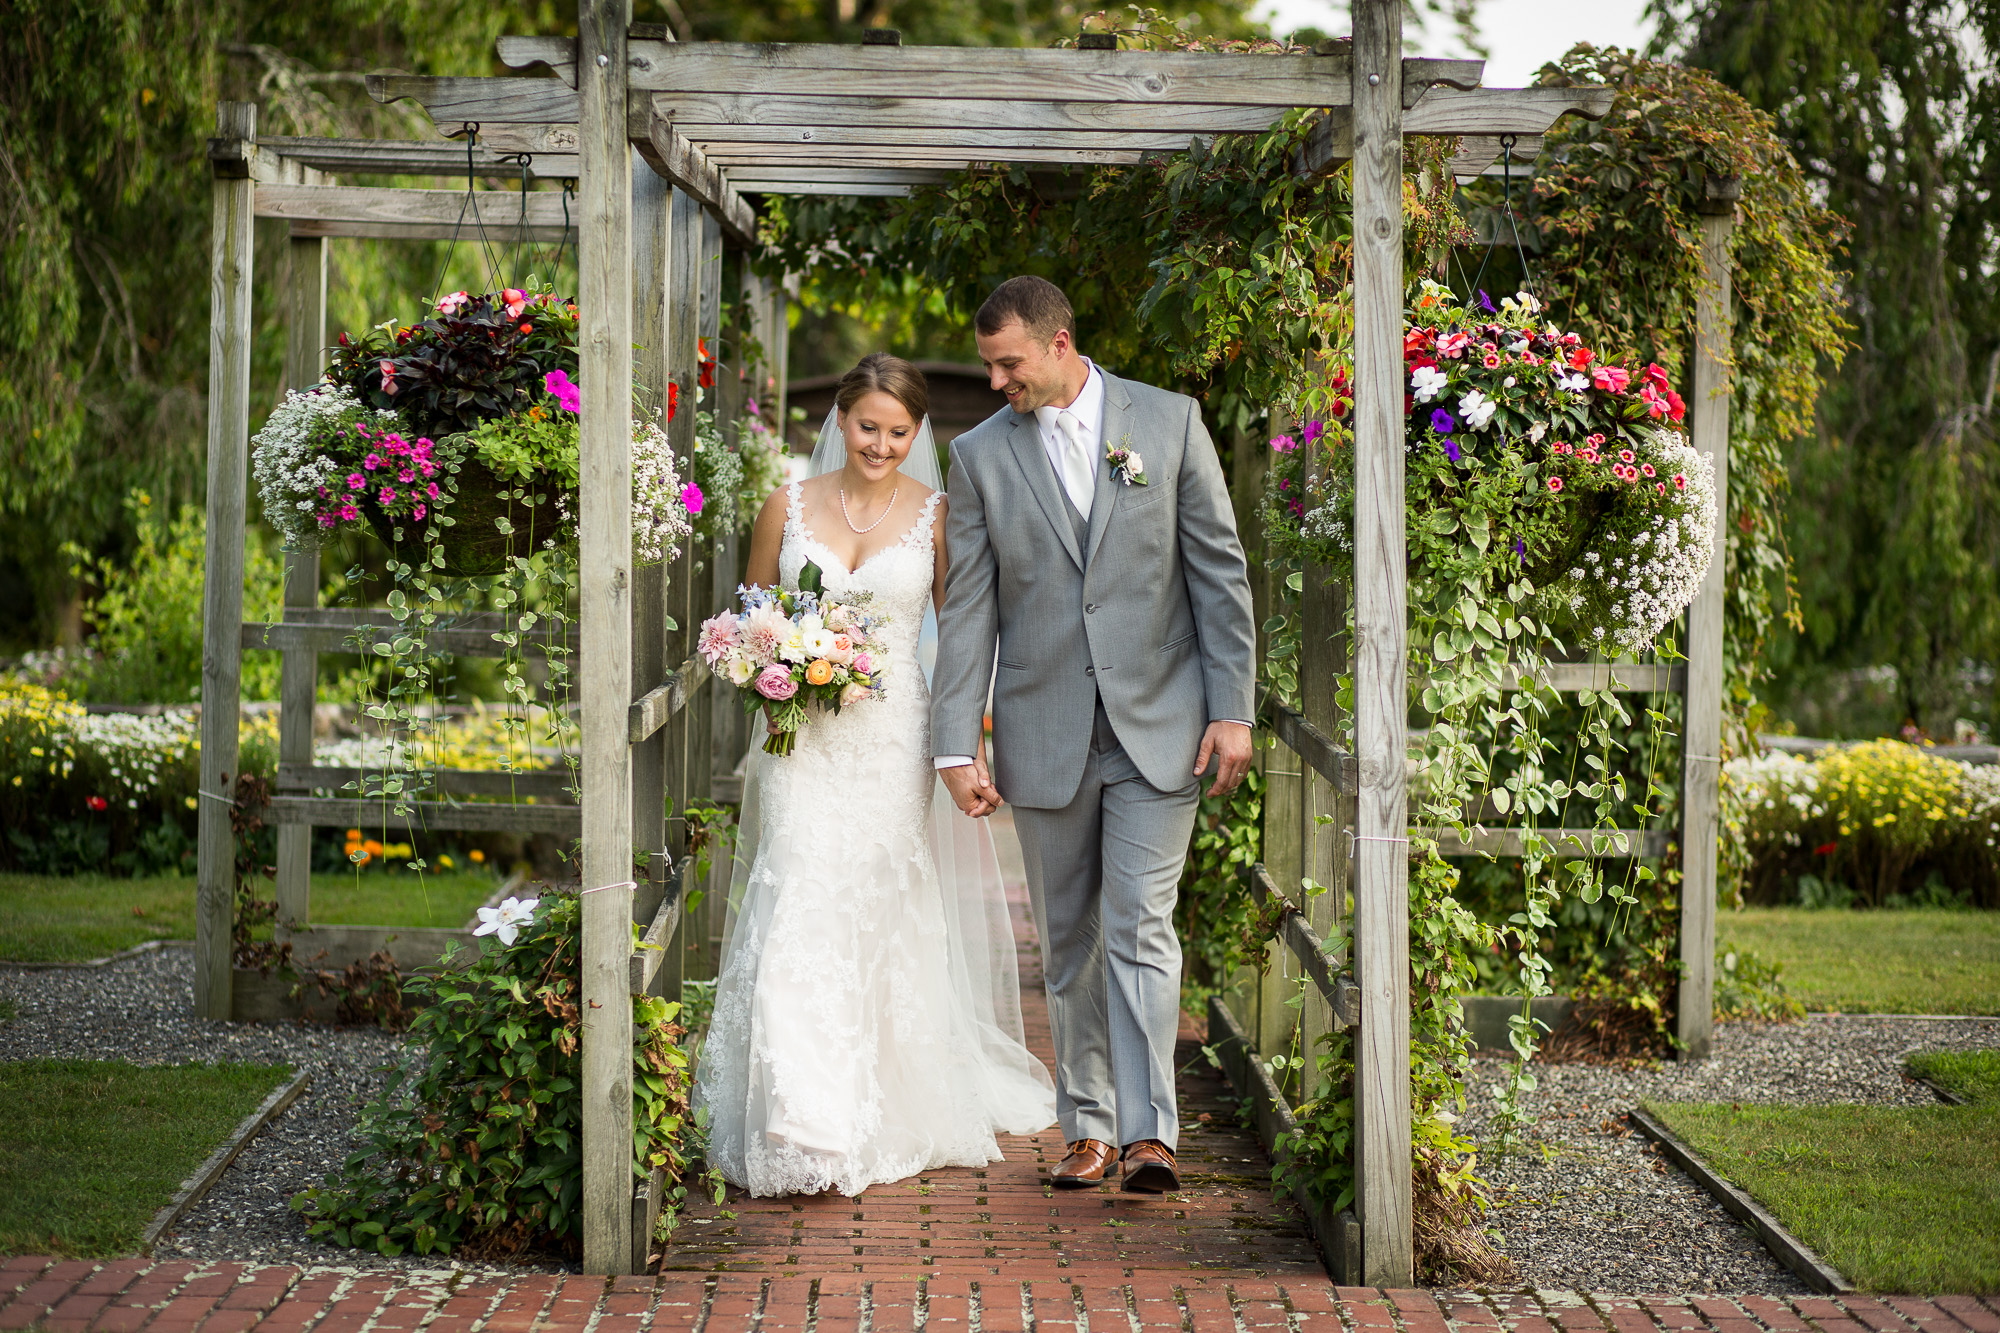 bride and groom walking through arbor at Mansion at Bald Hill garden